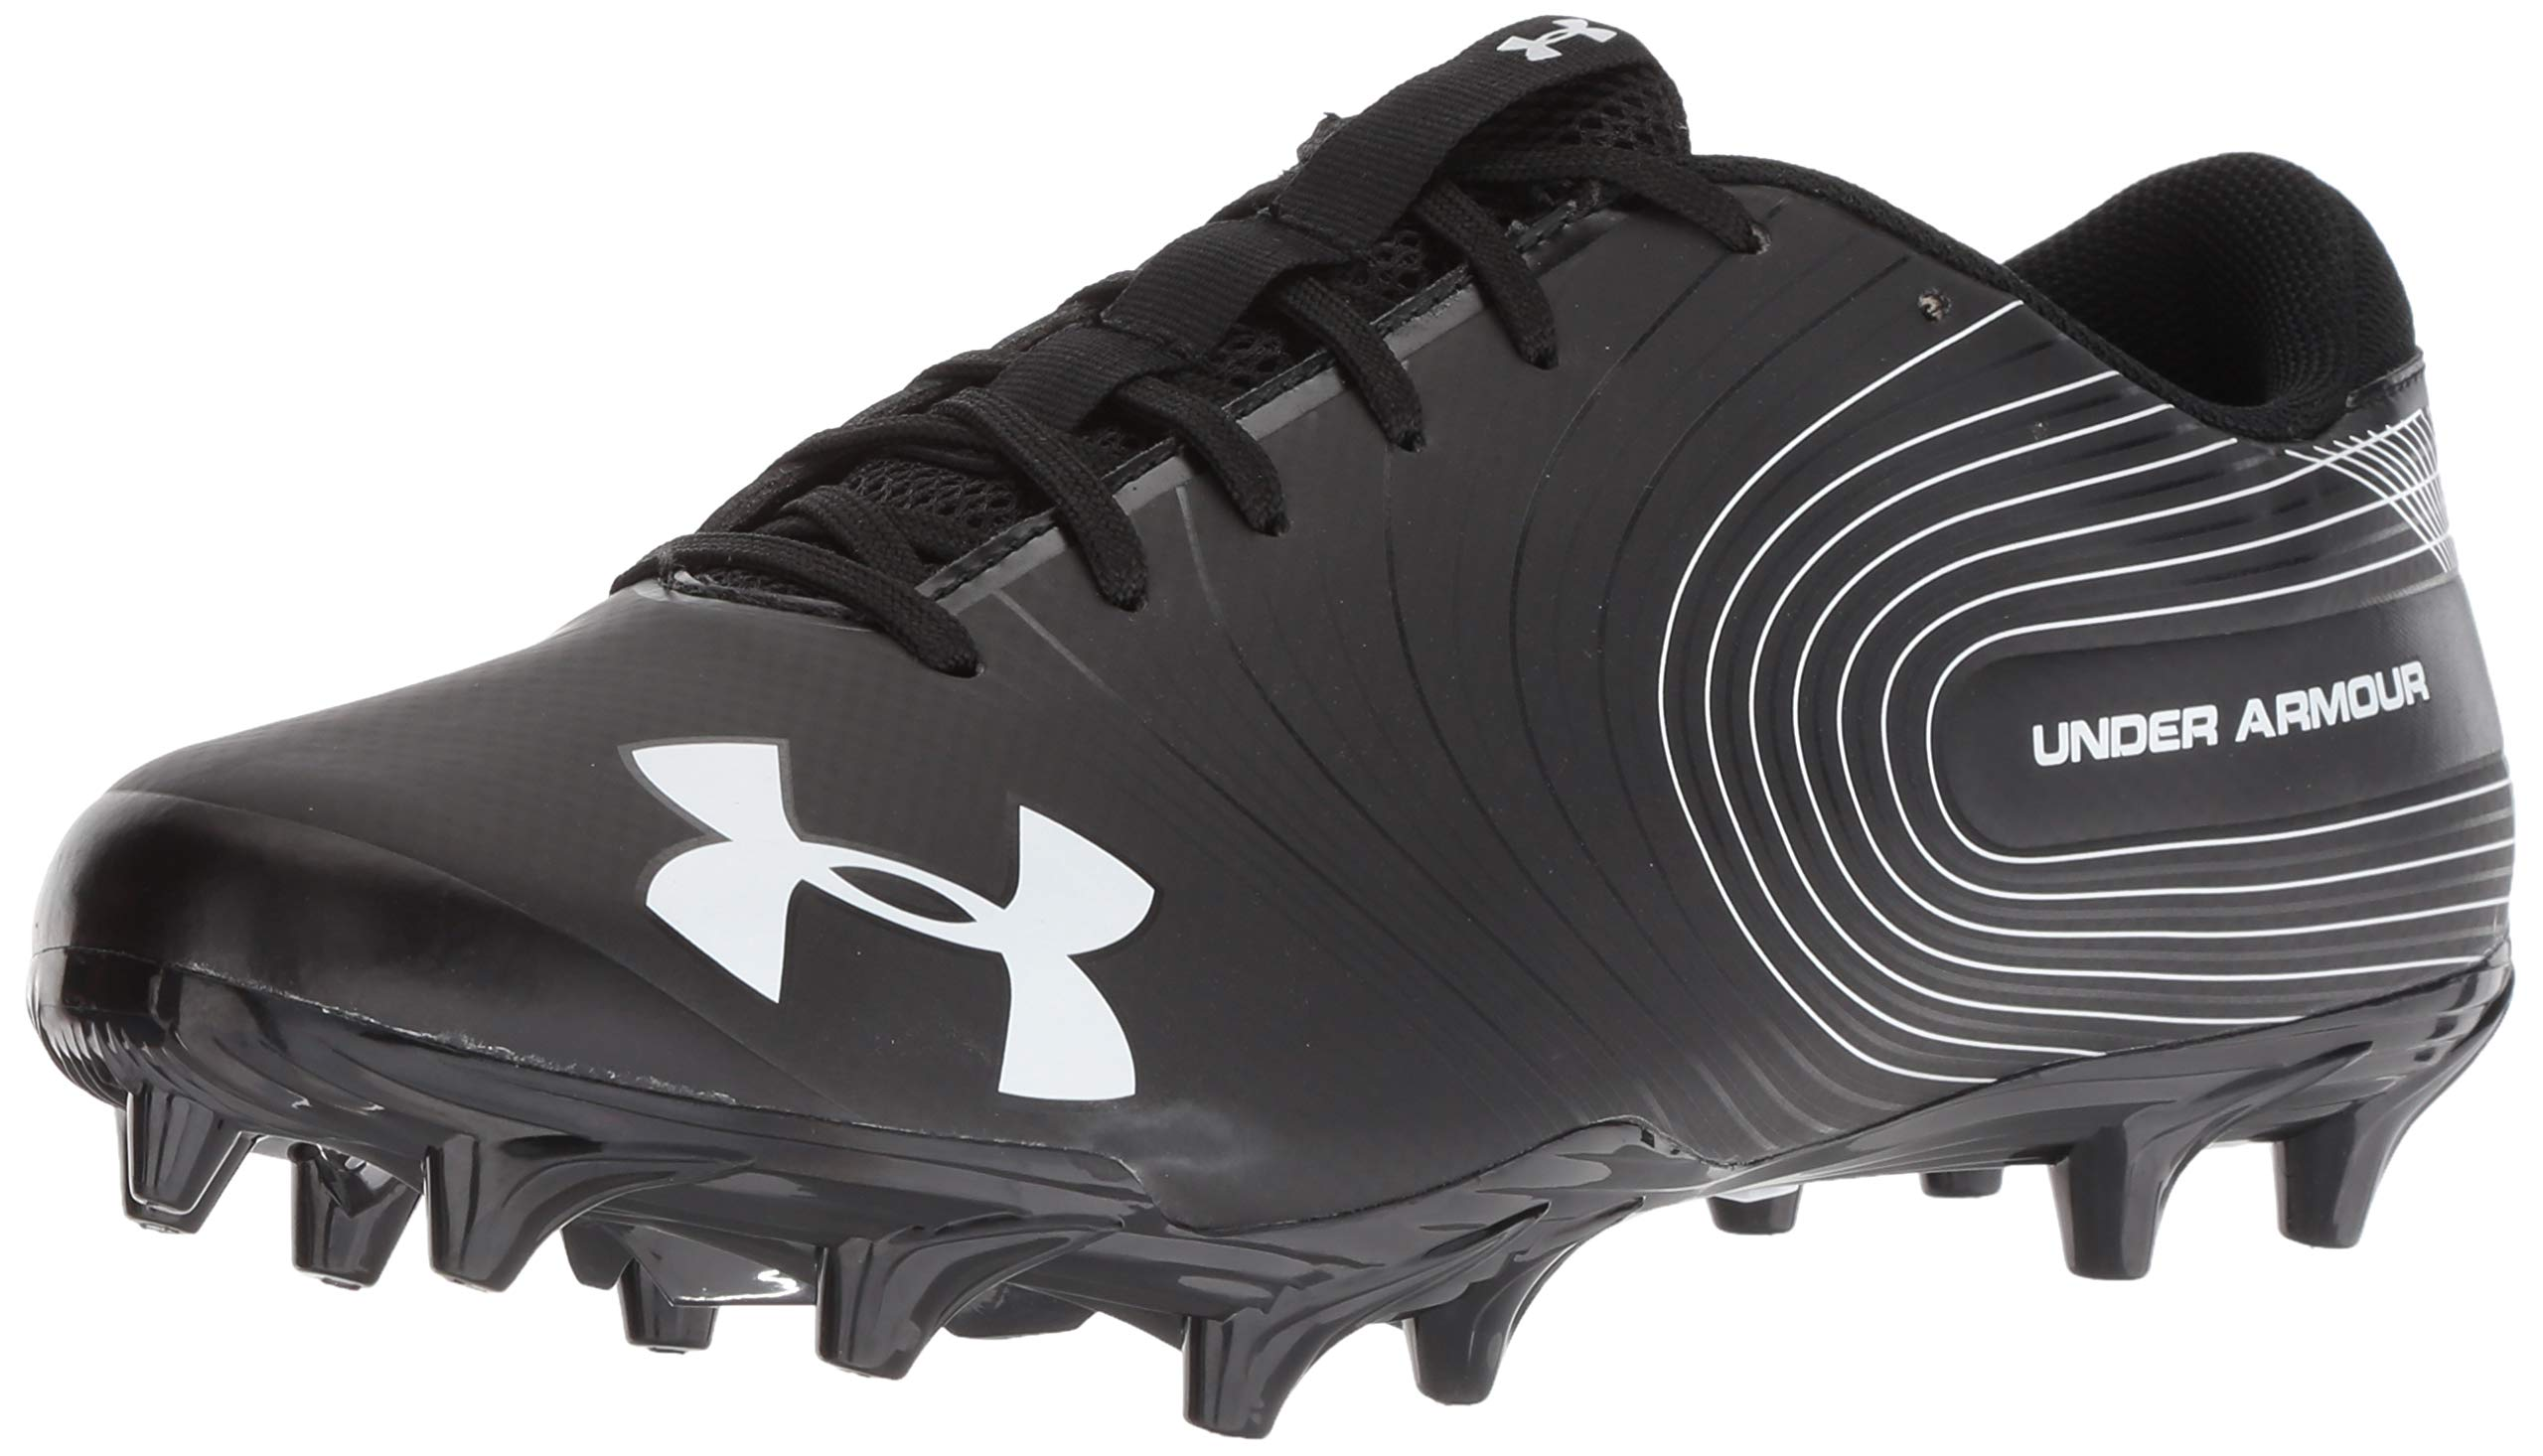 Under Armour Men's Speed Phantom MC Football Shoe Black (001)/White 6.5 by Under Armour (Image #1)